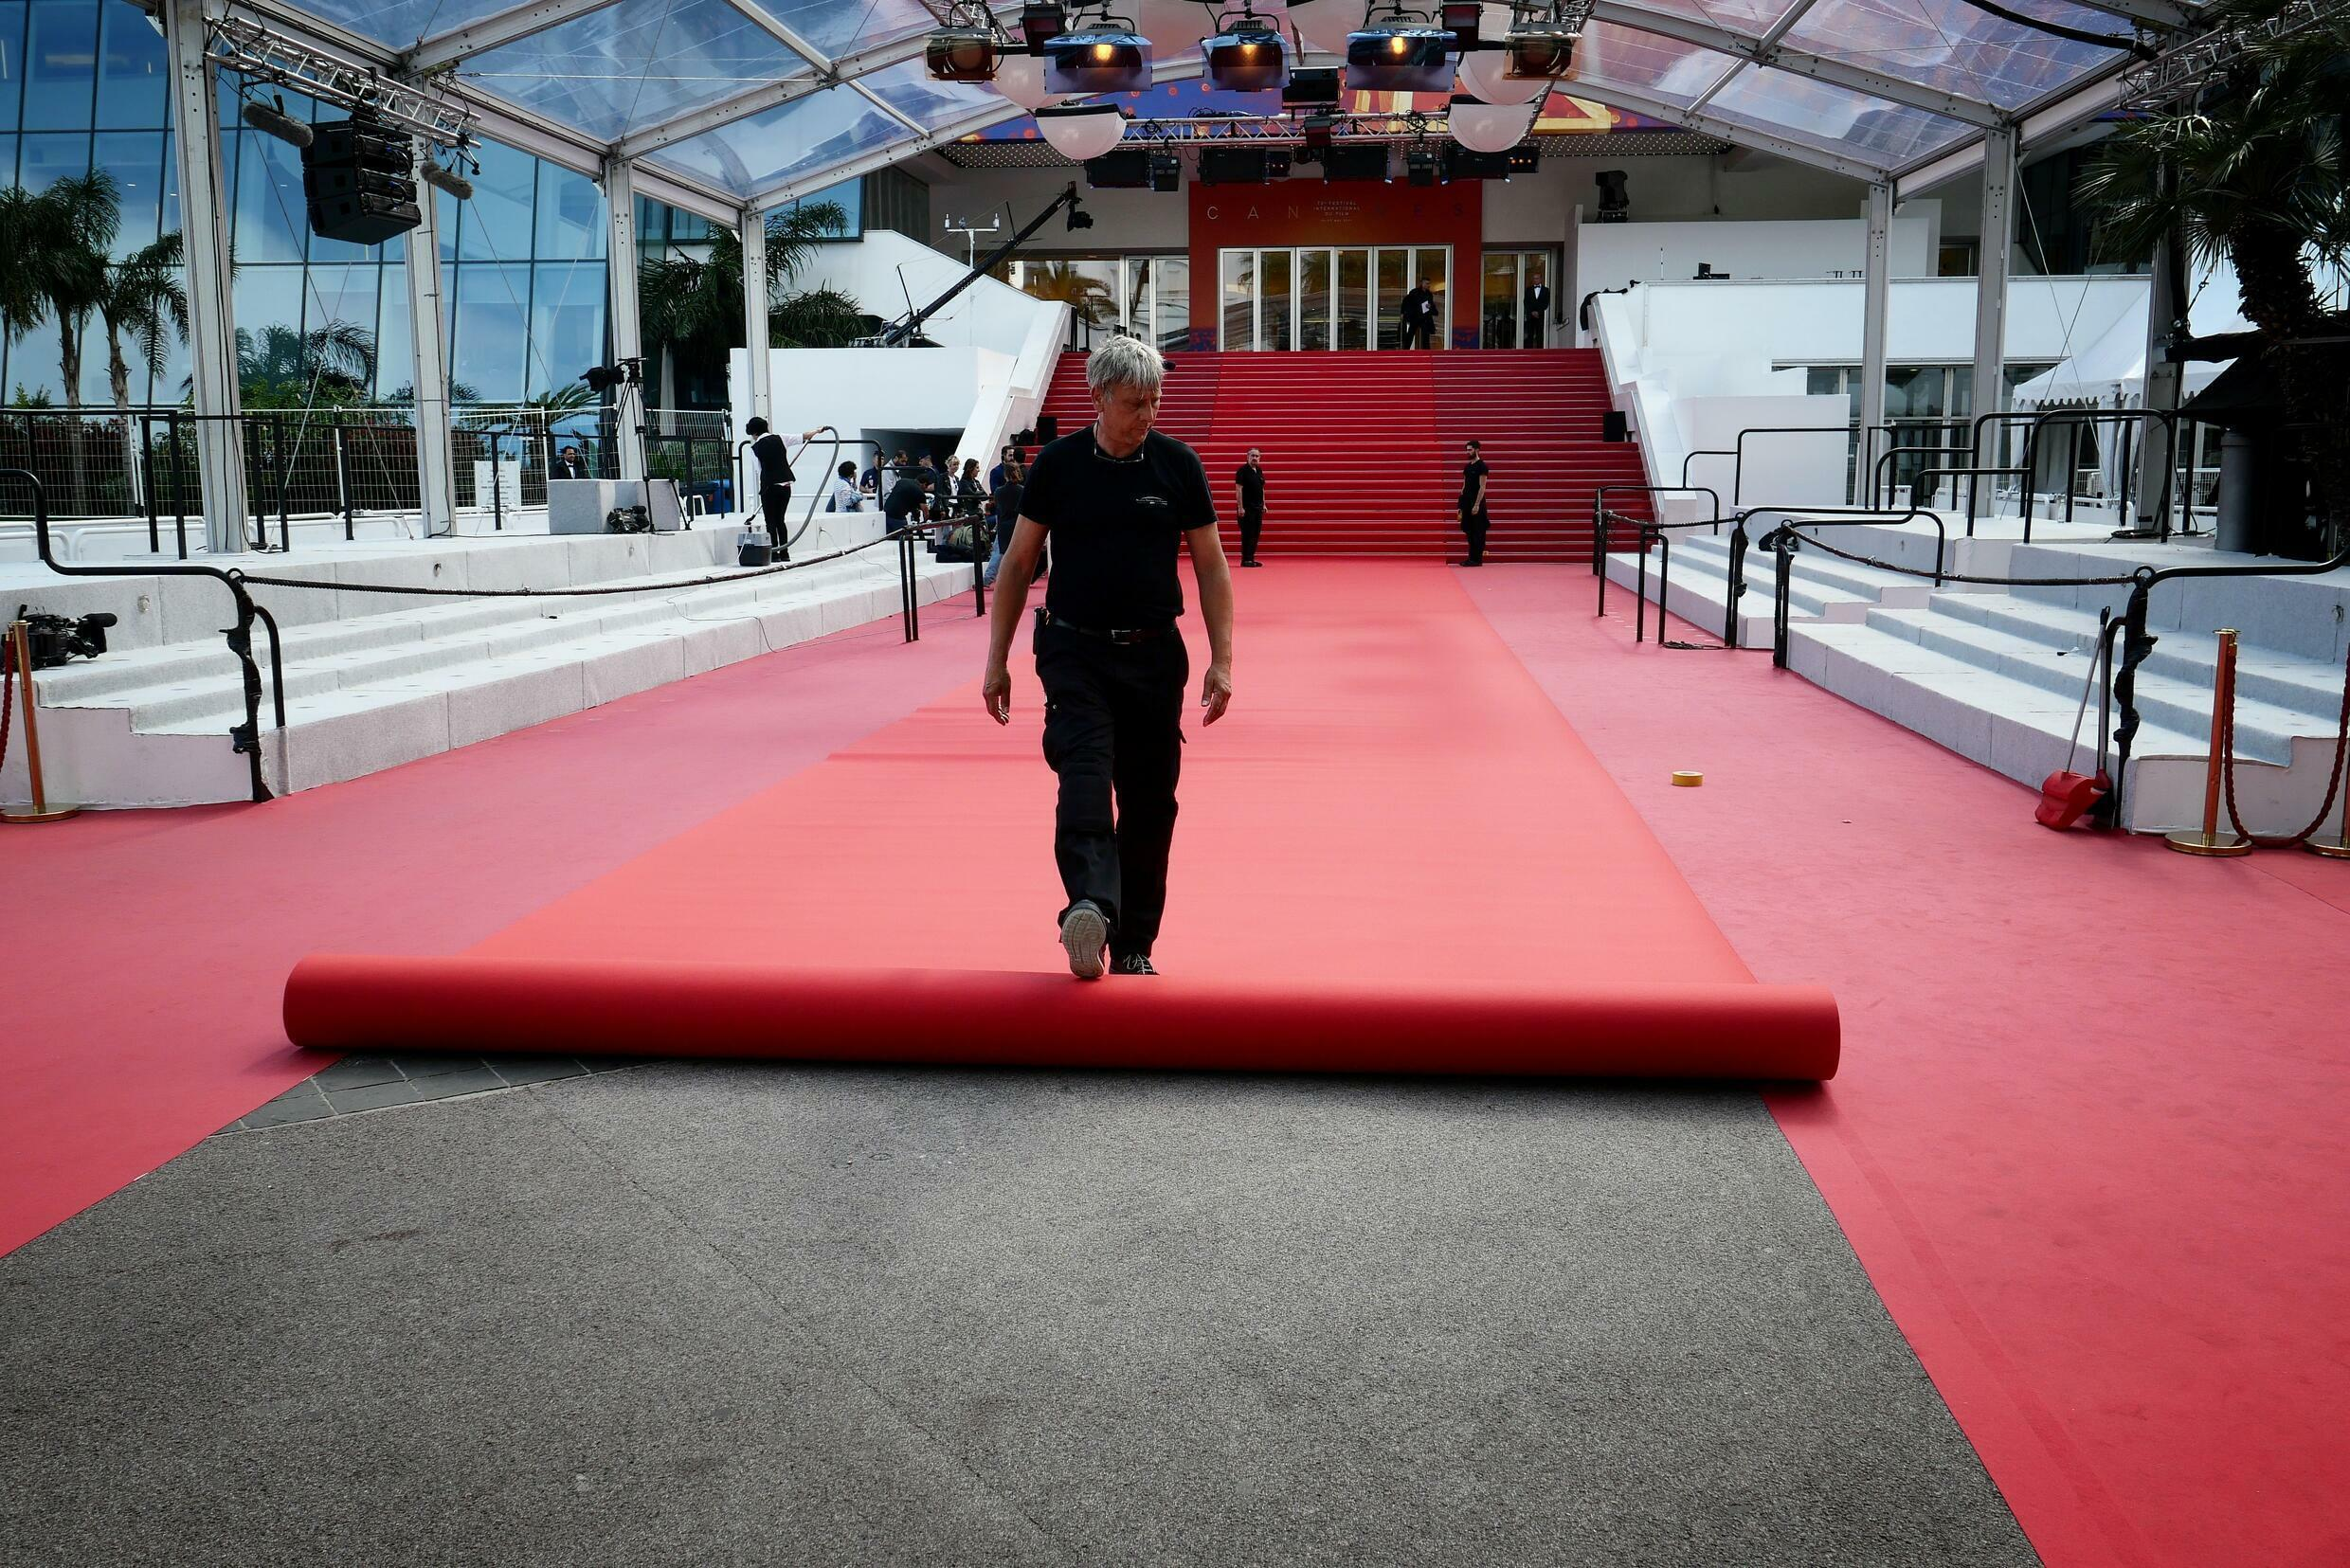 This year's Cannes red carpet will be half the size last seen in 2019.